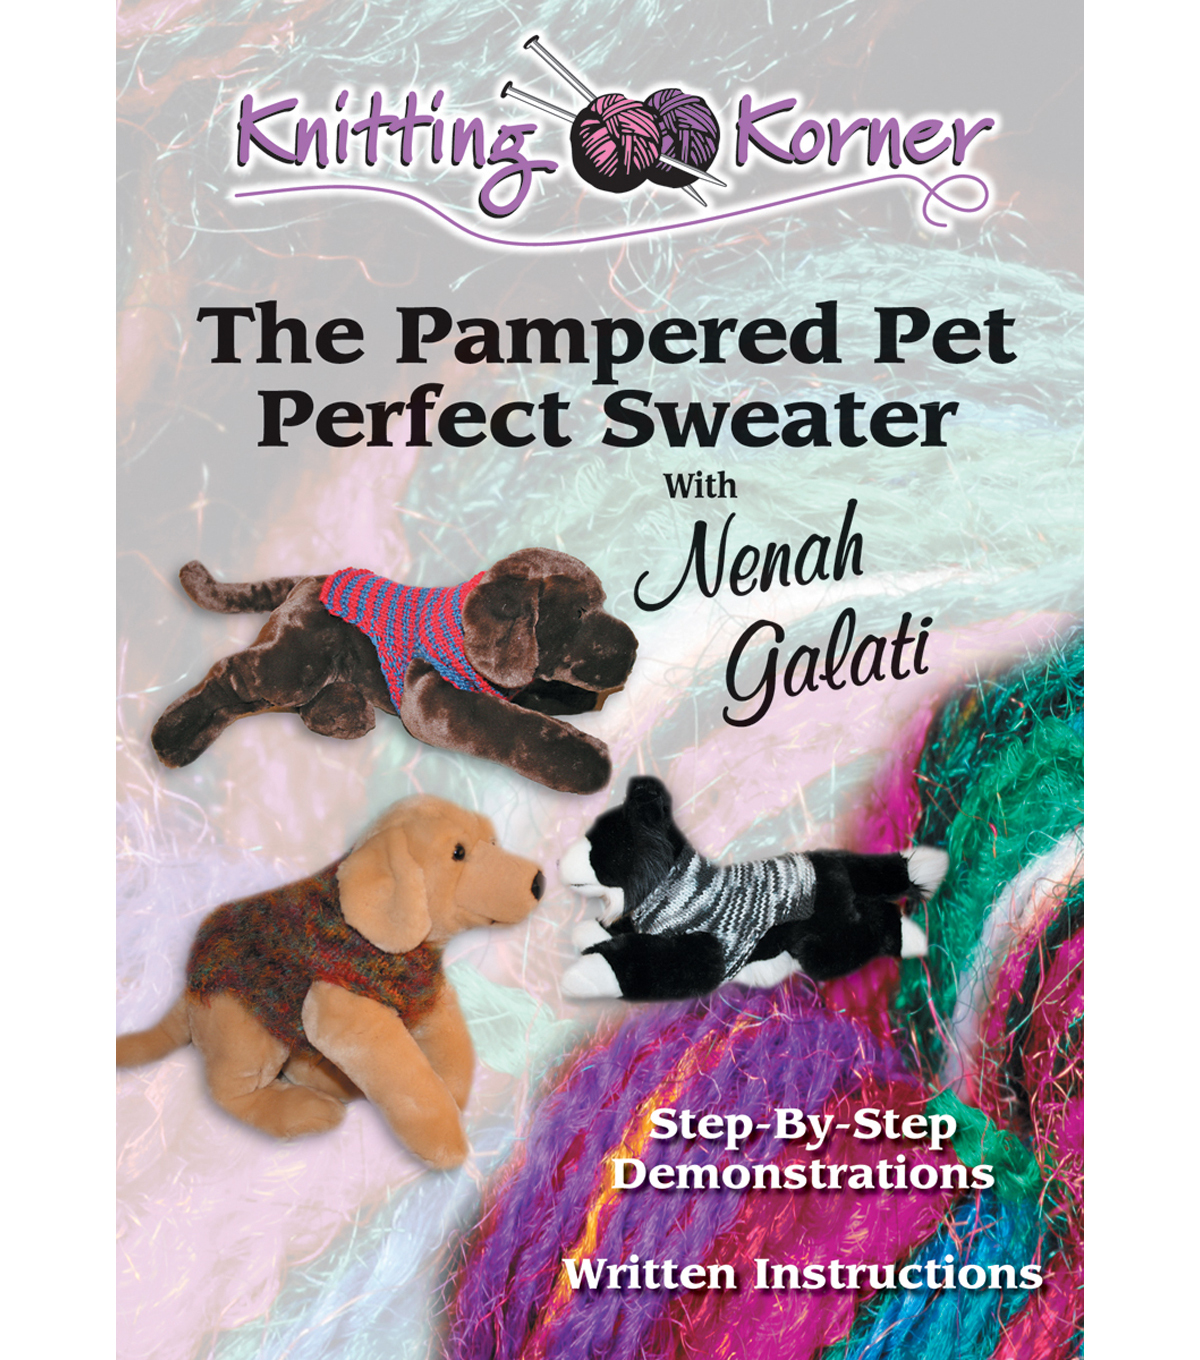 Pampered Pet Perfect Sweater DVD